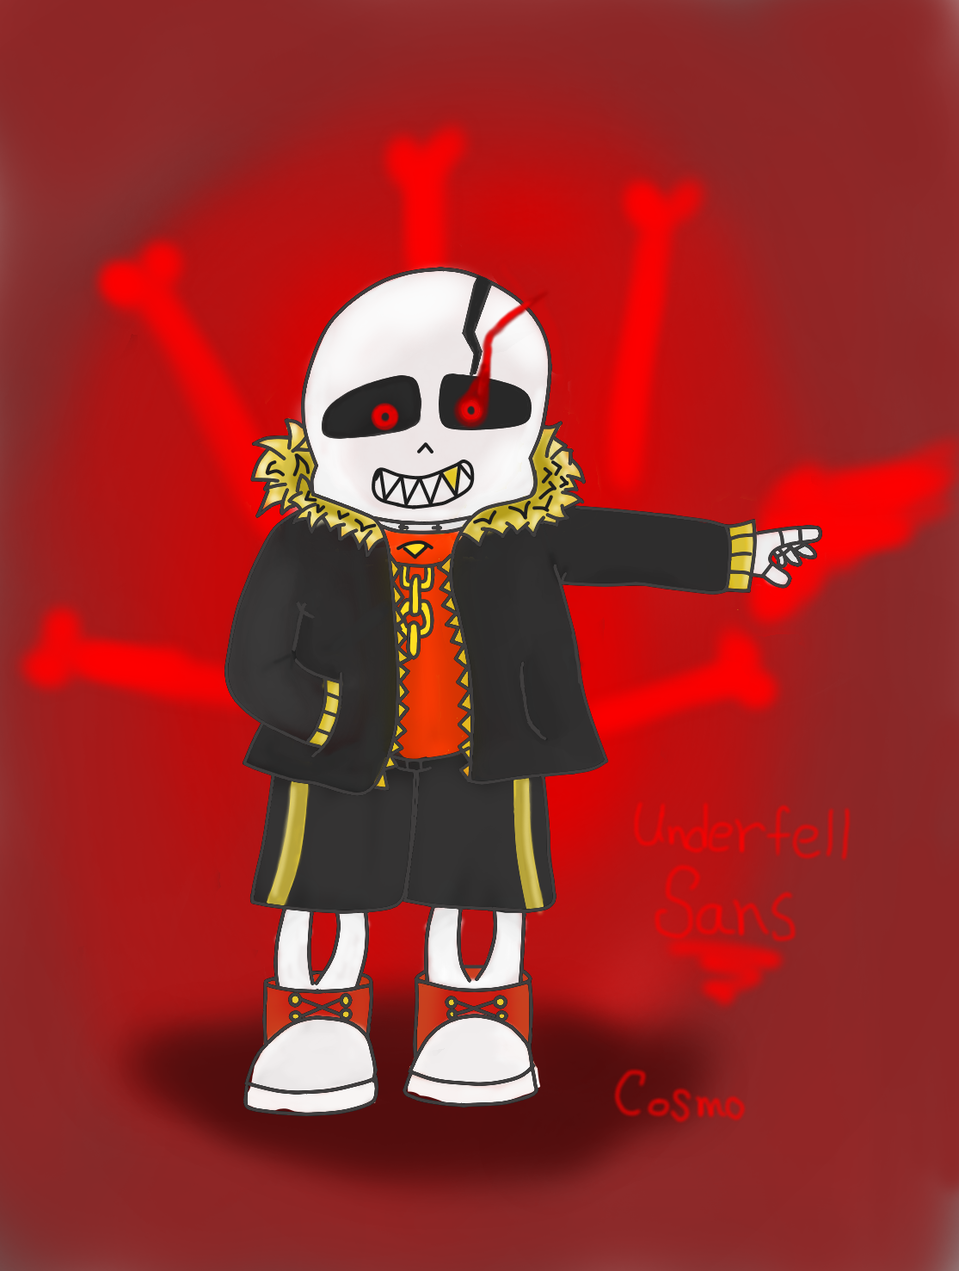 Underfell sans - Cosmo T | Illustrations - ART street by MediBang